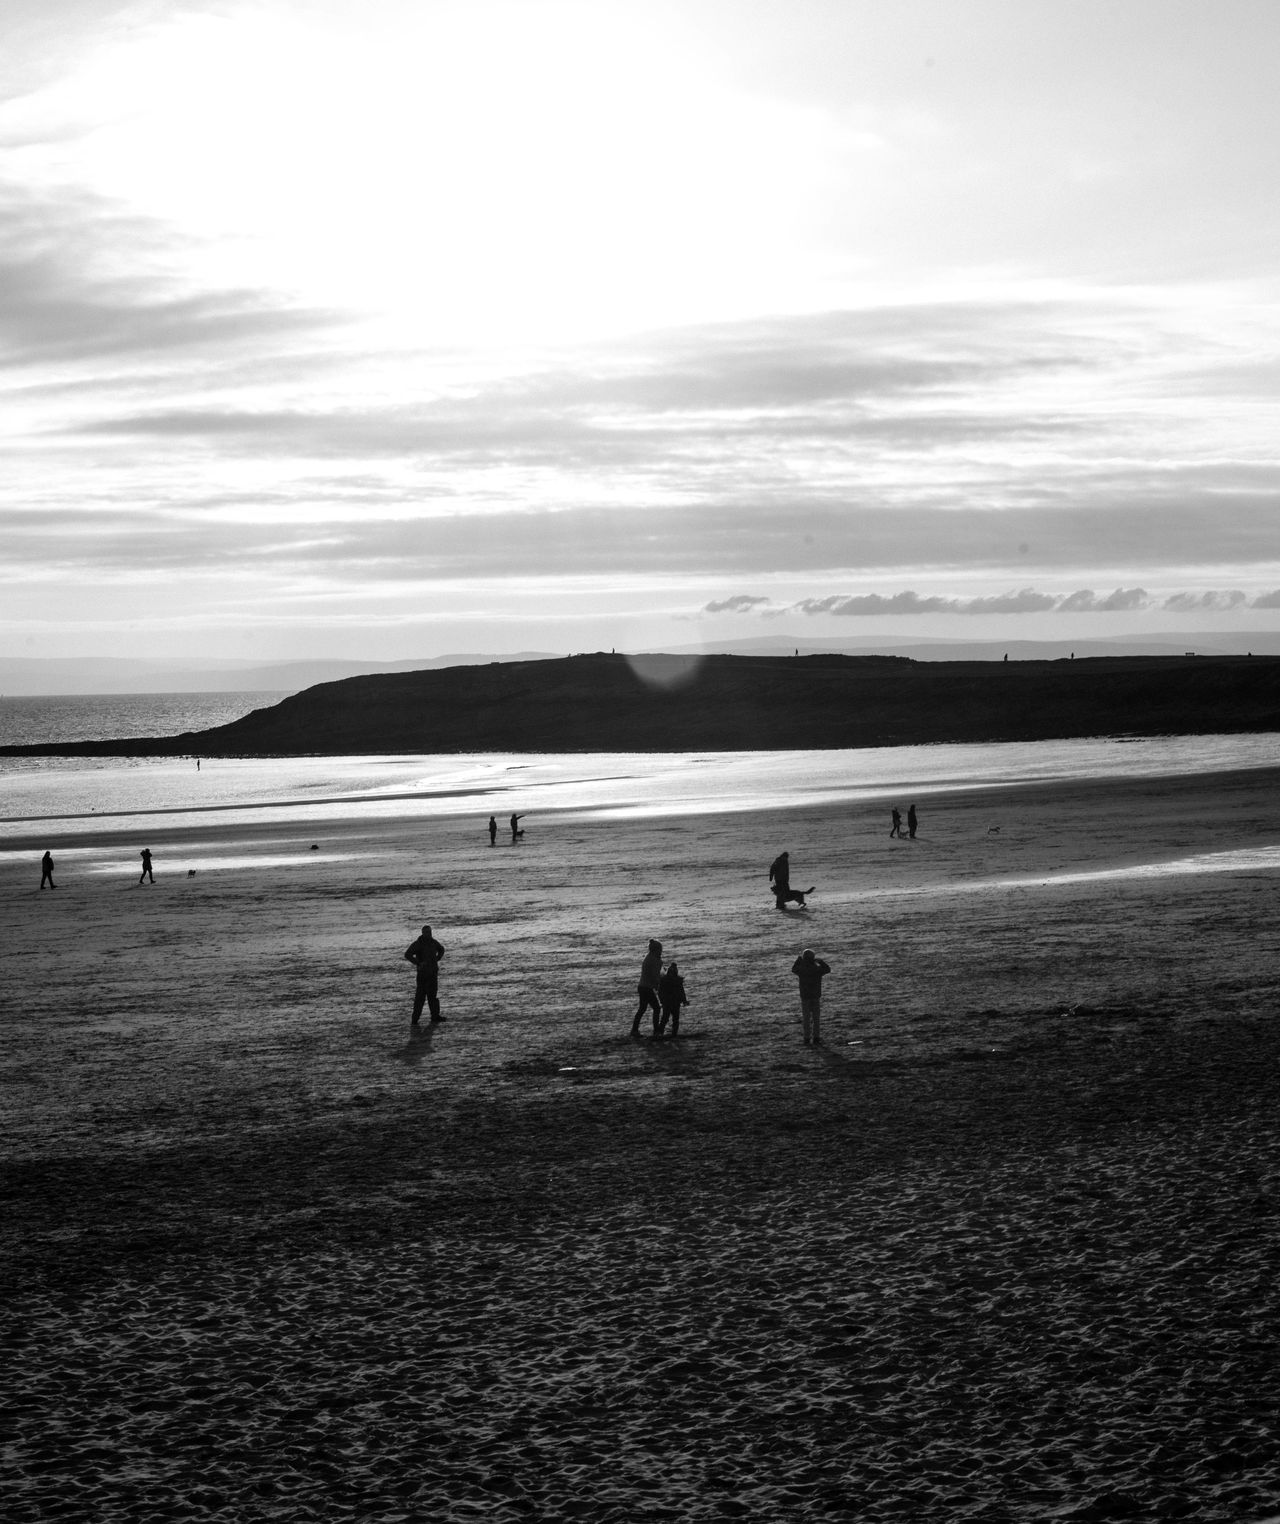 Cold Beach Beachphotography Beauty In Nature Blackandwhite Cloud - Sky Day Horizon Over Water Leisure Activity Men Nature Outdoors People Photojournalism Playing Real People Sand Scenics Sea Shore Sky Streetphotography Taking Photos Travel Wales Water